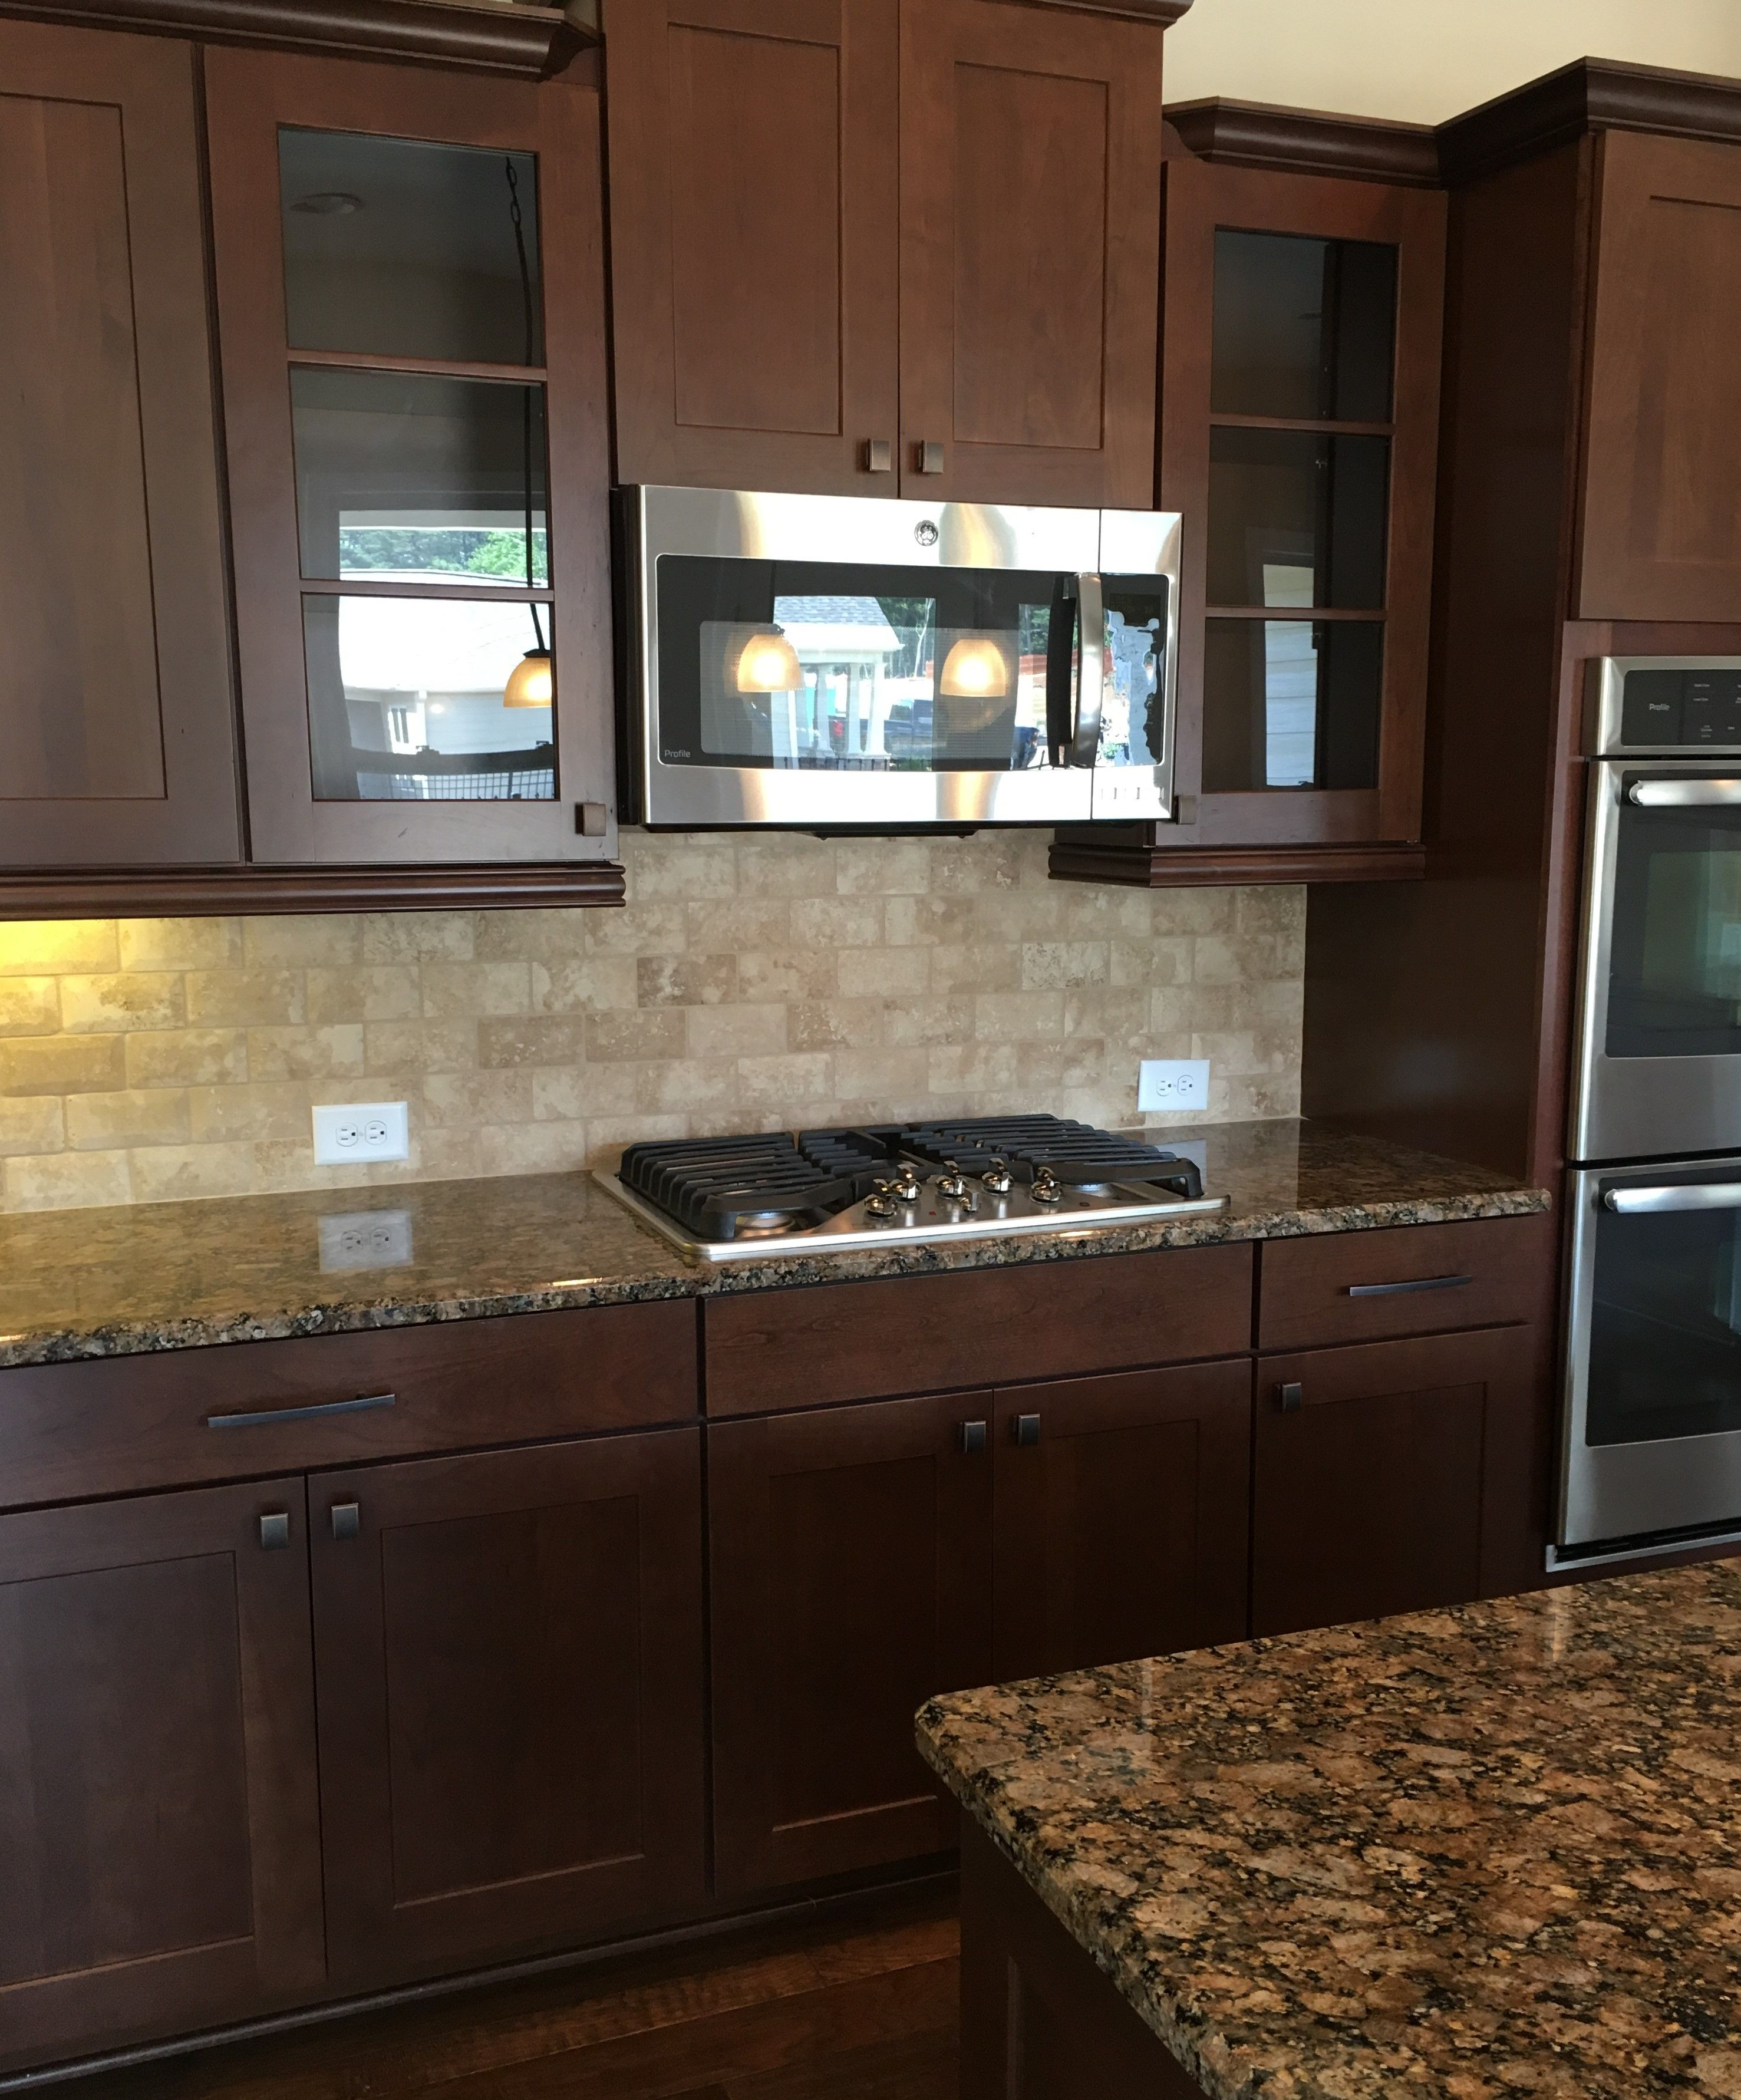 Best Way To Mix Colors Of Kitchen Cabinets In 2020 Kitchen Design Small Cherry Cabinets Kitchen Cherry Wood Kitchen Cabinets